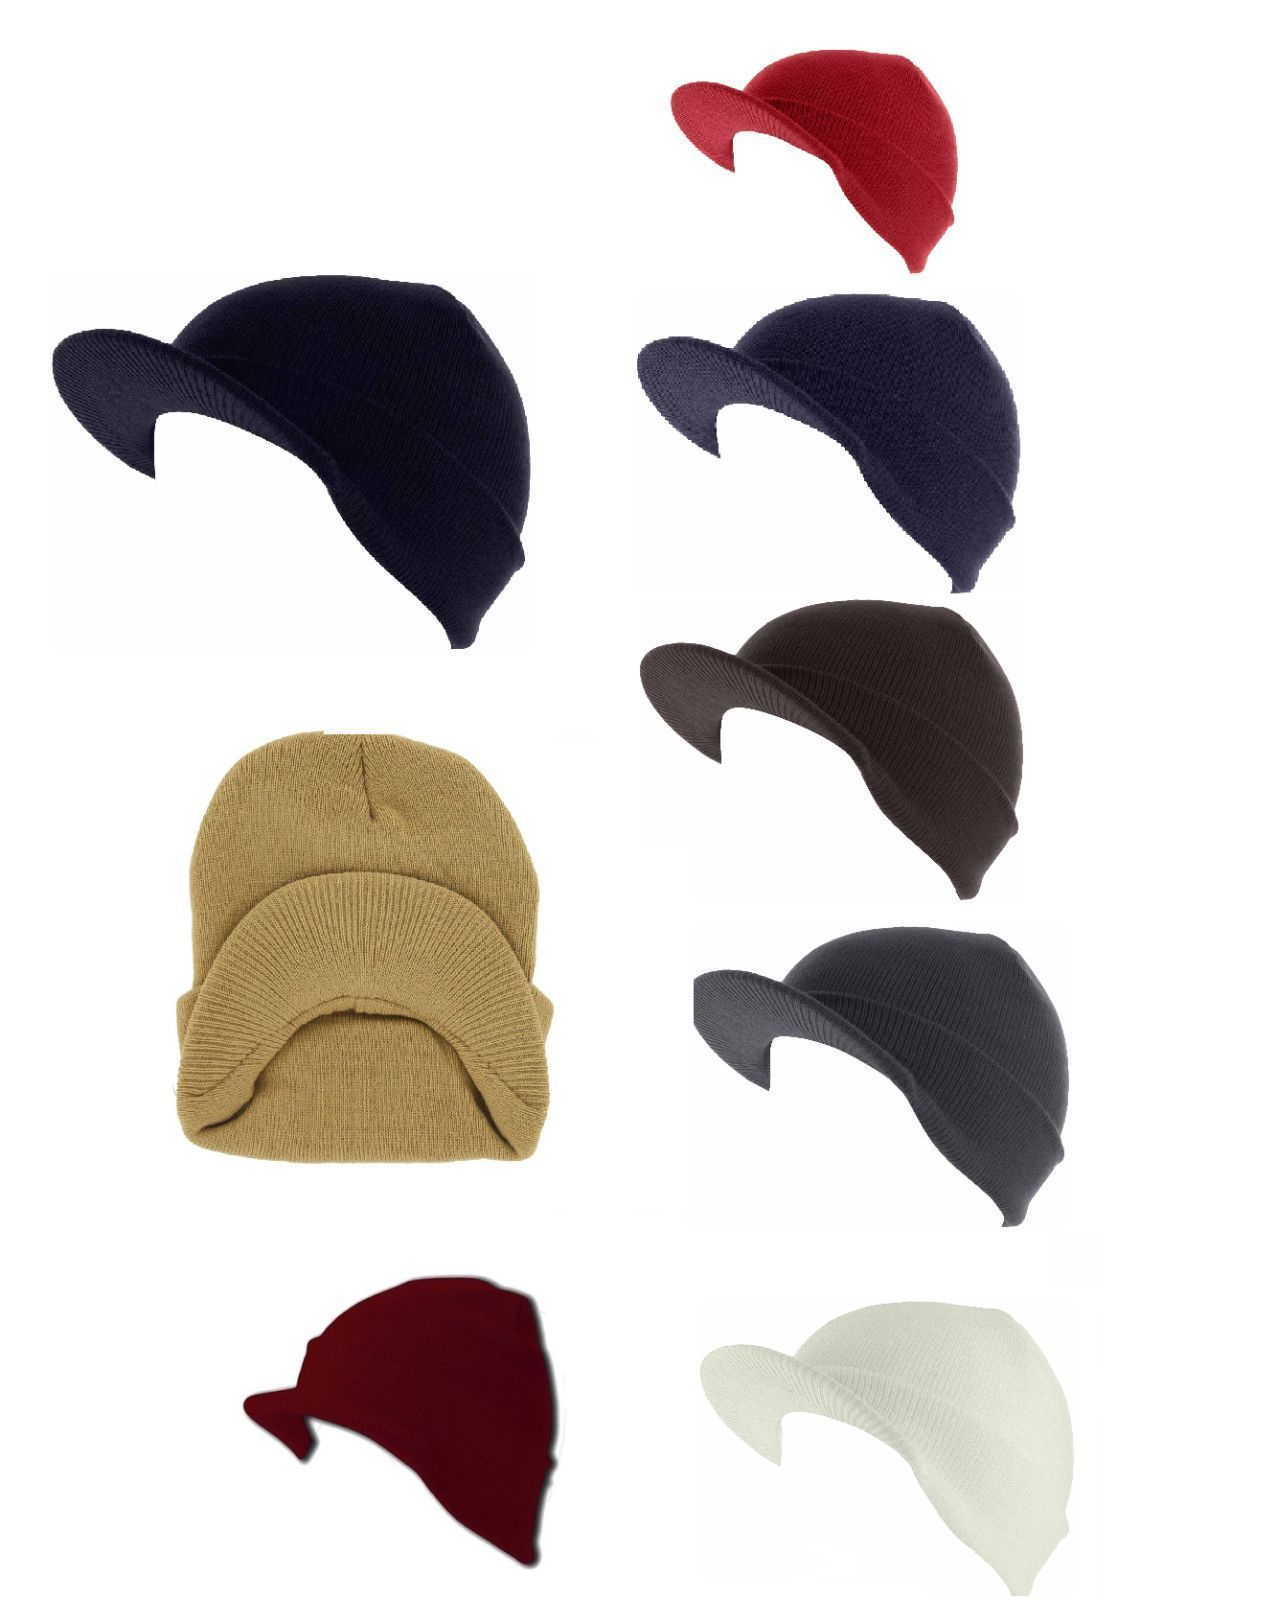 125c58a52f5 Plain Visor Beanie Winter Ski Hat Cap Skull and similar items. S l1600